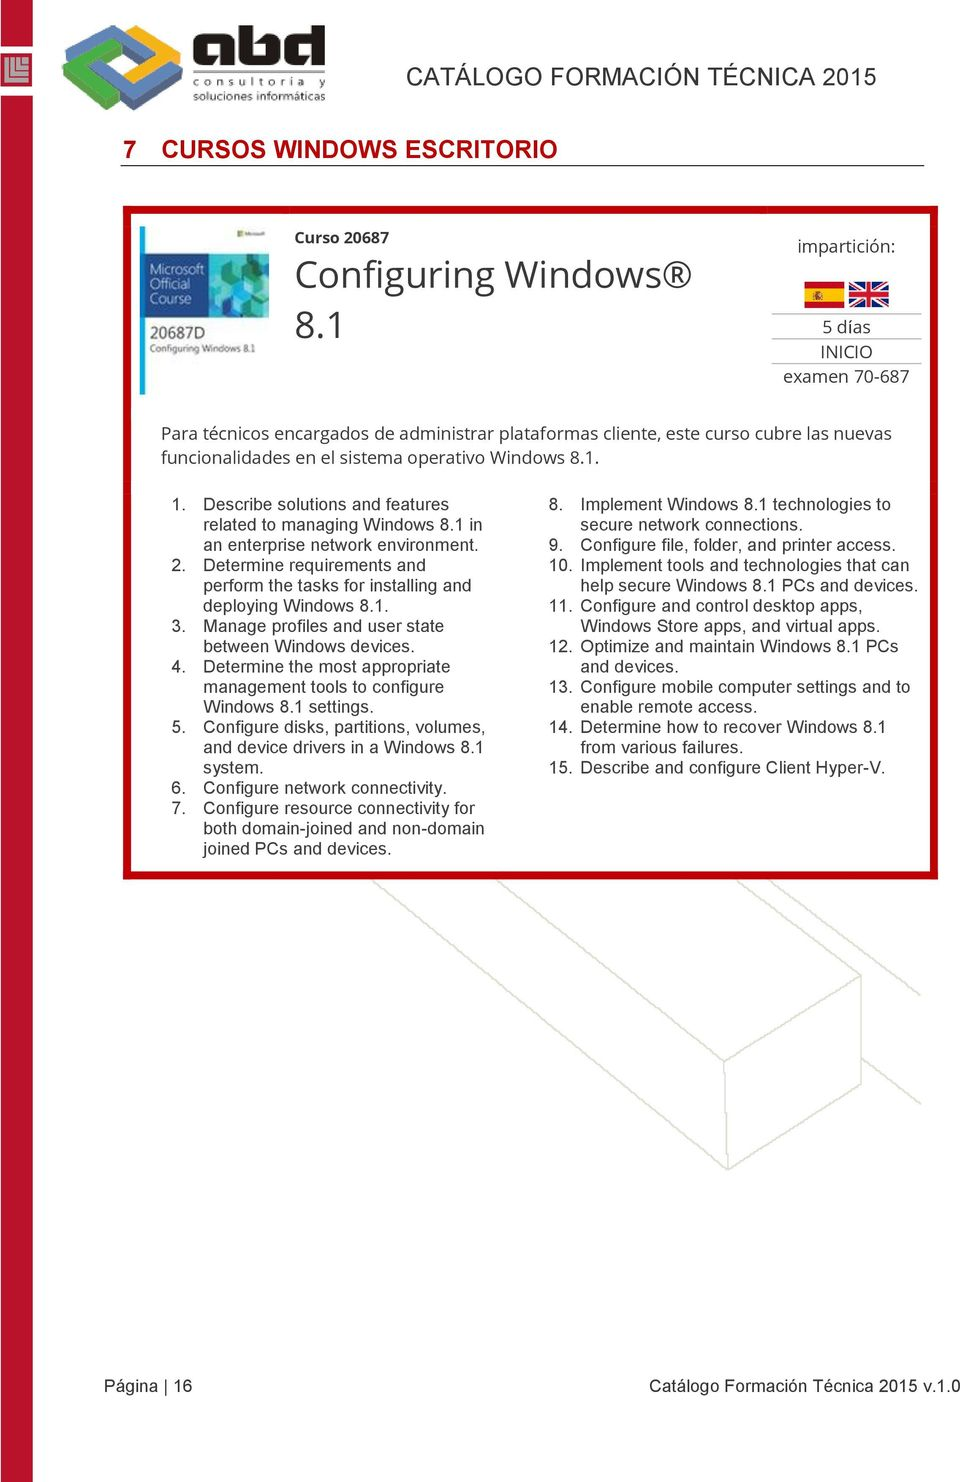 Describe solutions and features related to managing Windows 8.1 in an enterprise network environment. 2. Determine requirements and perform the tasks for installing and deploying Windows 8.1. 3.